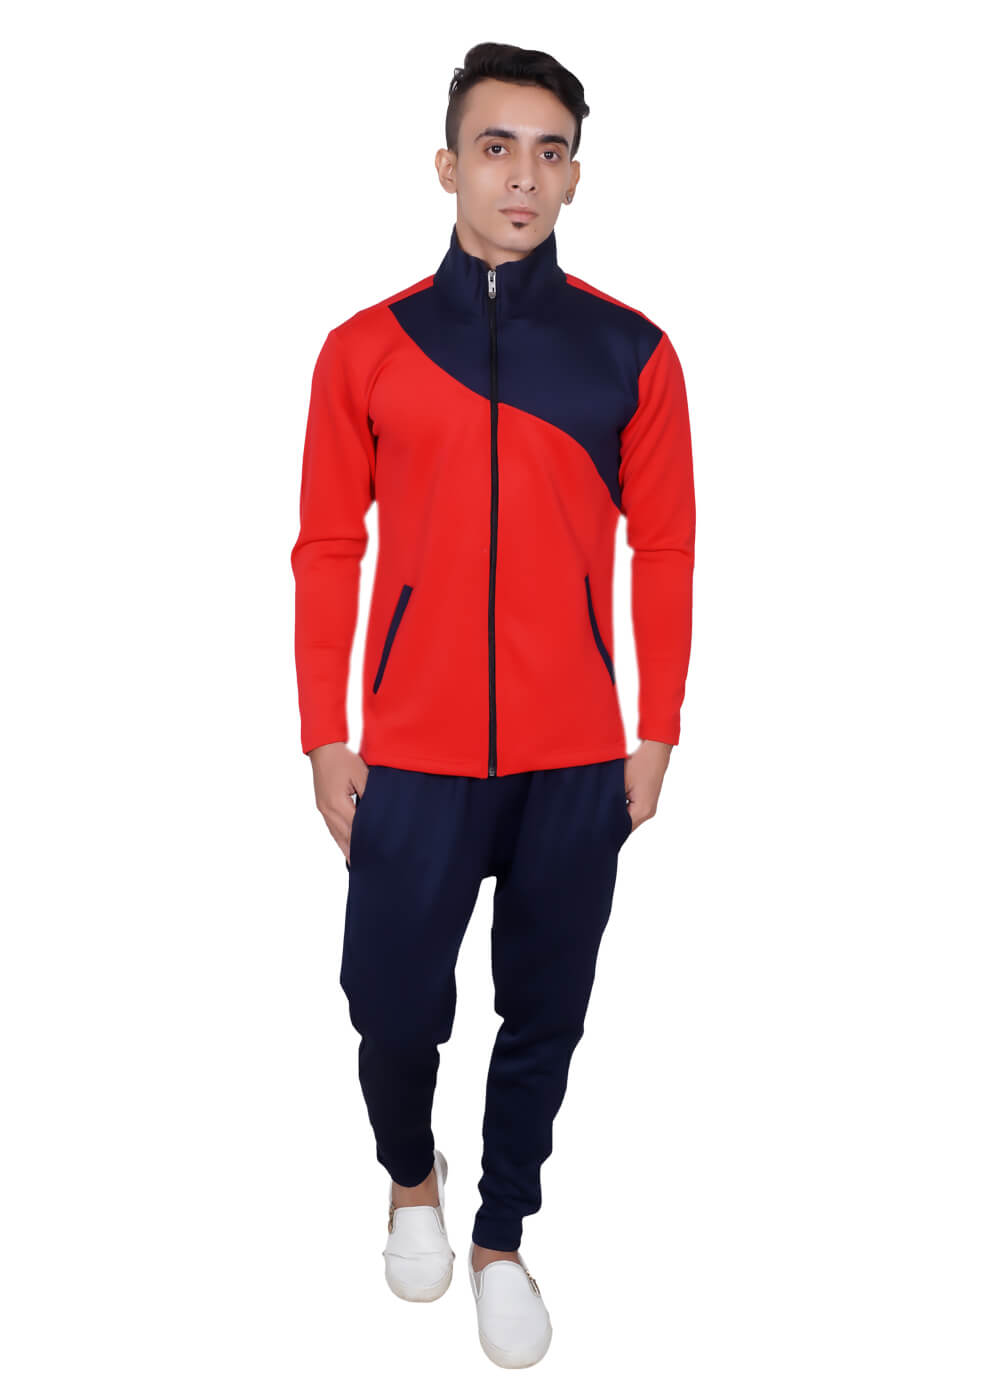 Cheap Tracksuits Manufacturers in Salem